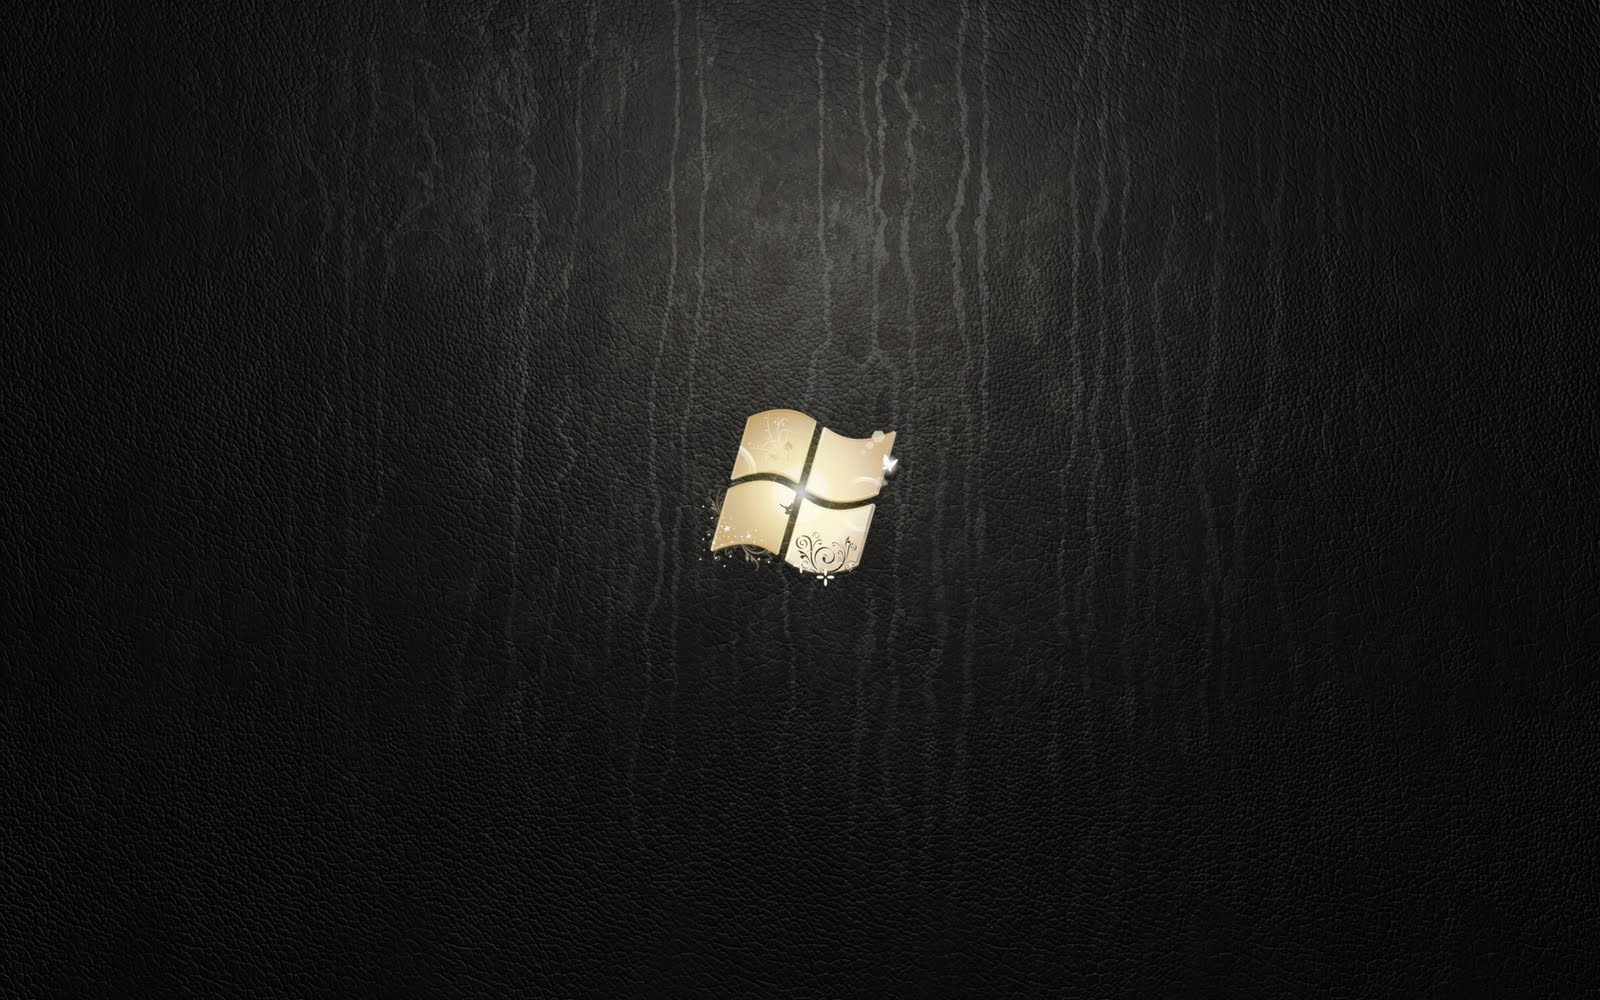 windows 7 backgrounds is black - wallpaper cave